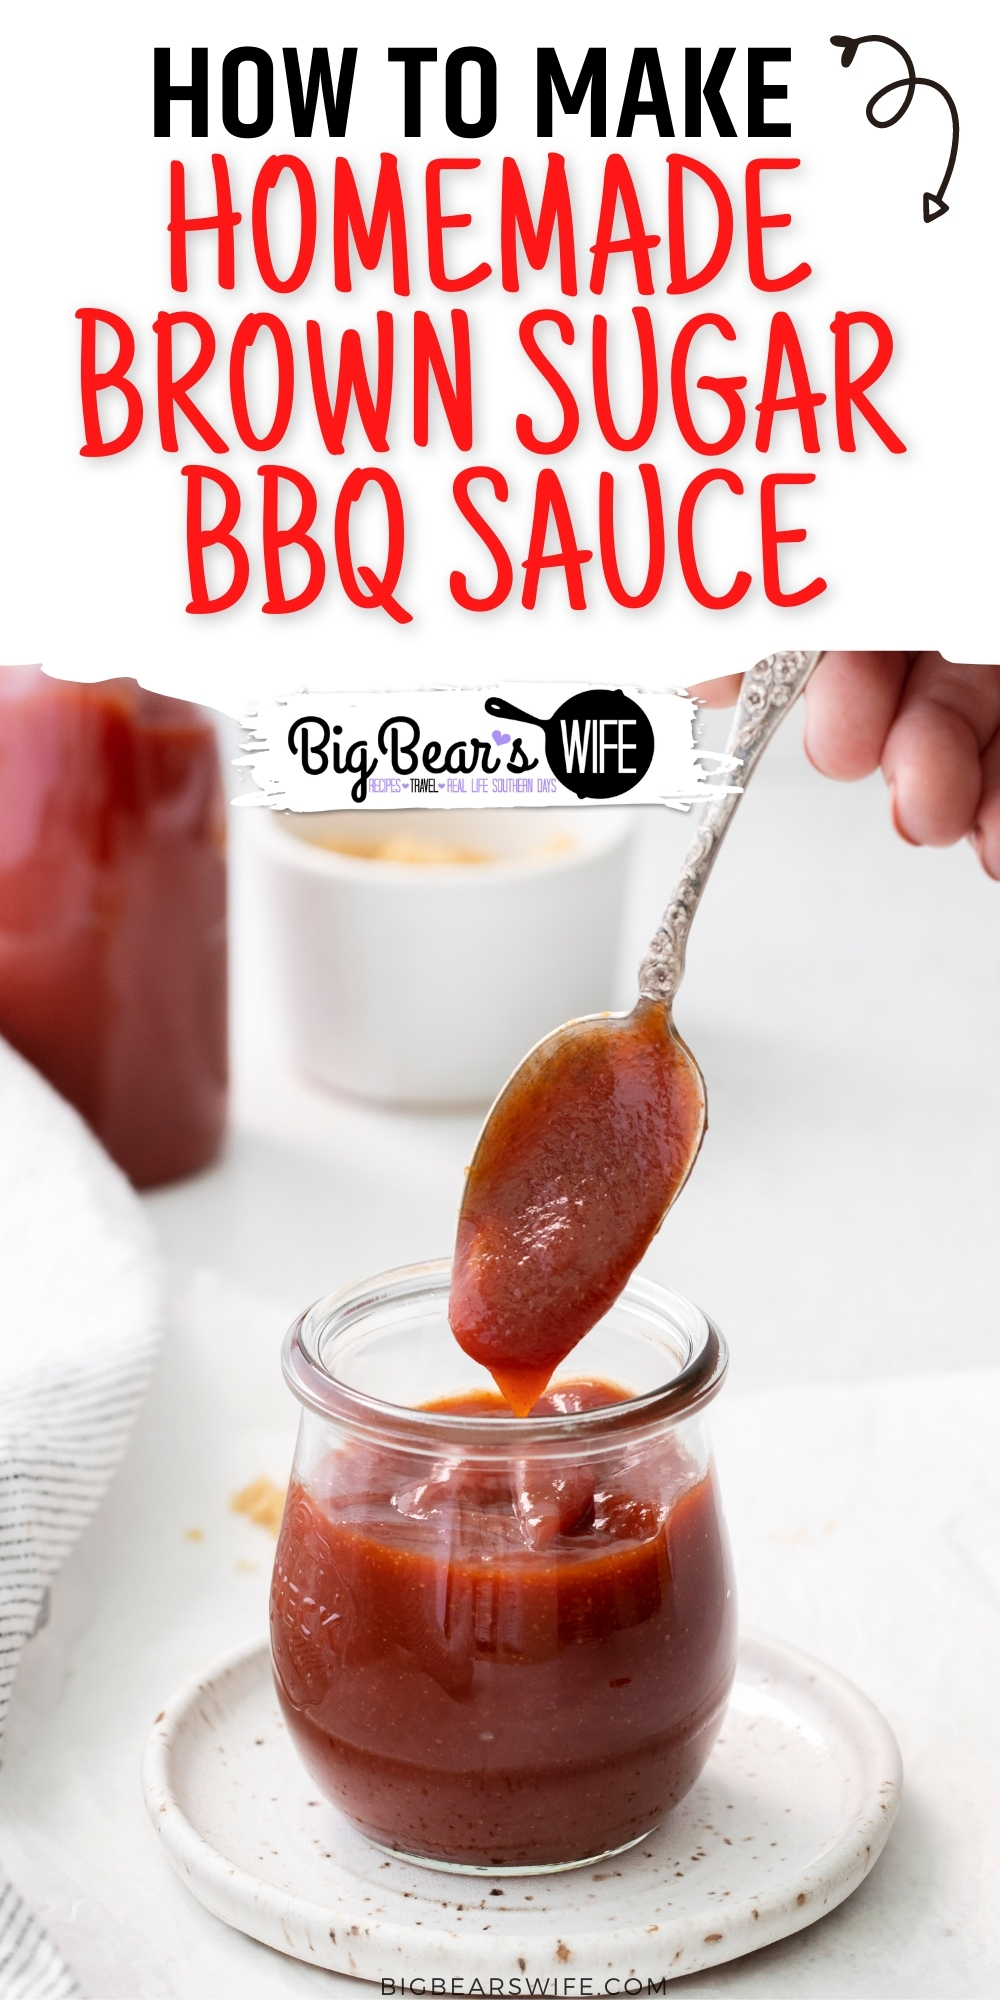 Homemade Brown Sugar BBQ Sauce - a sweet homemade bbq sauce that is perfect for ribs and burgers but also great for dipping fries and onion rings! via @bigbearswife